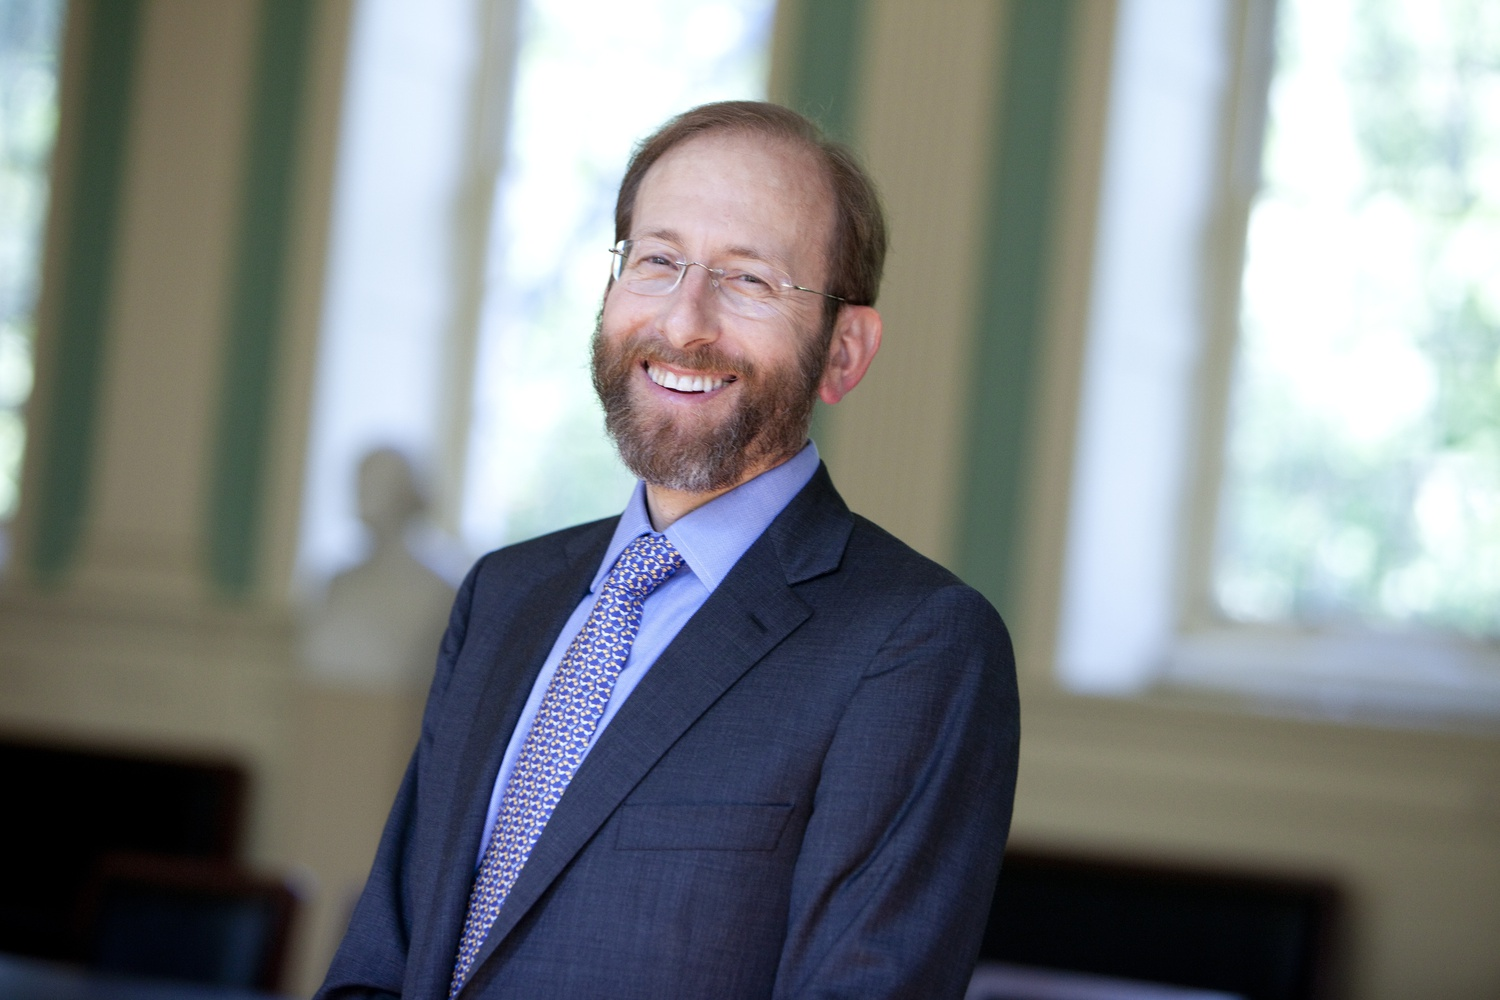 In 2011, Alan M. Garber '76 was selected to succeed Steven E. Hyman as University Provost, leaving his position as a Stanford professor of medicine and economics to work in Cambridge.